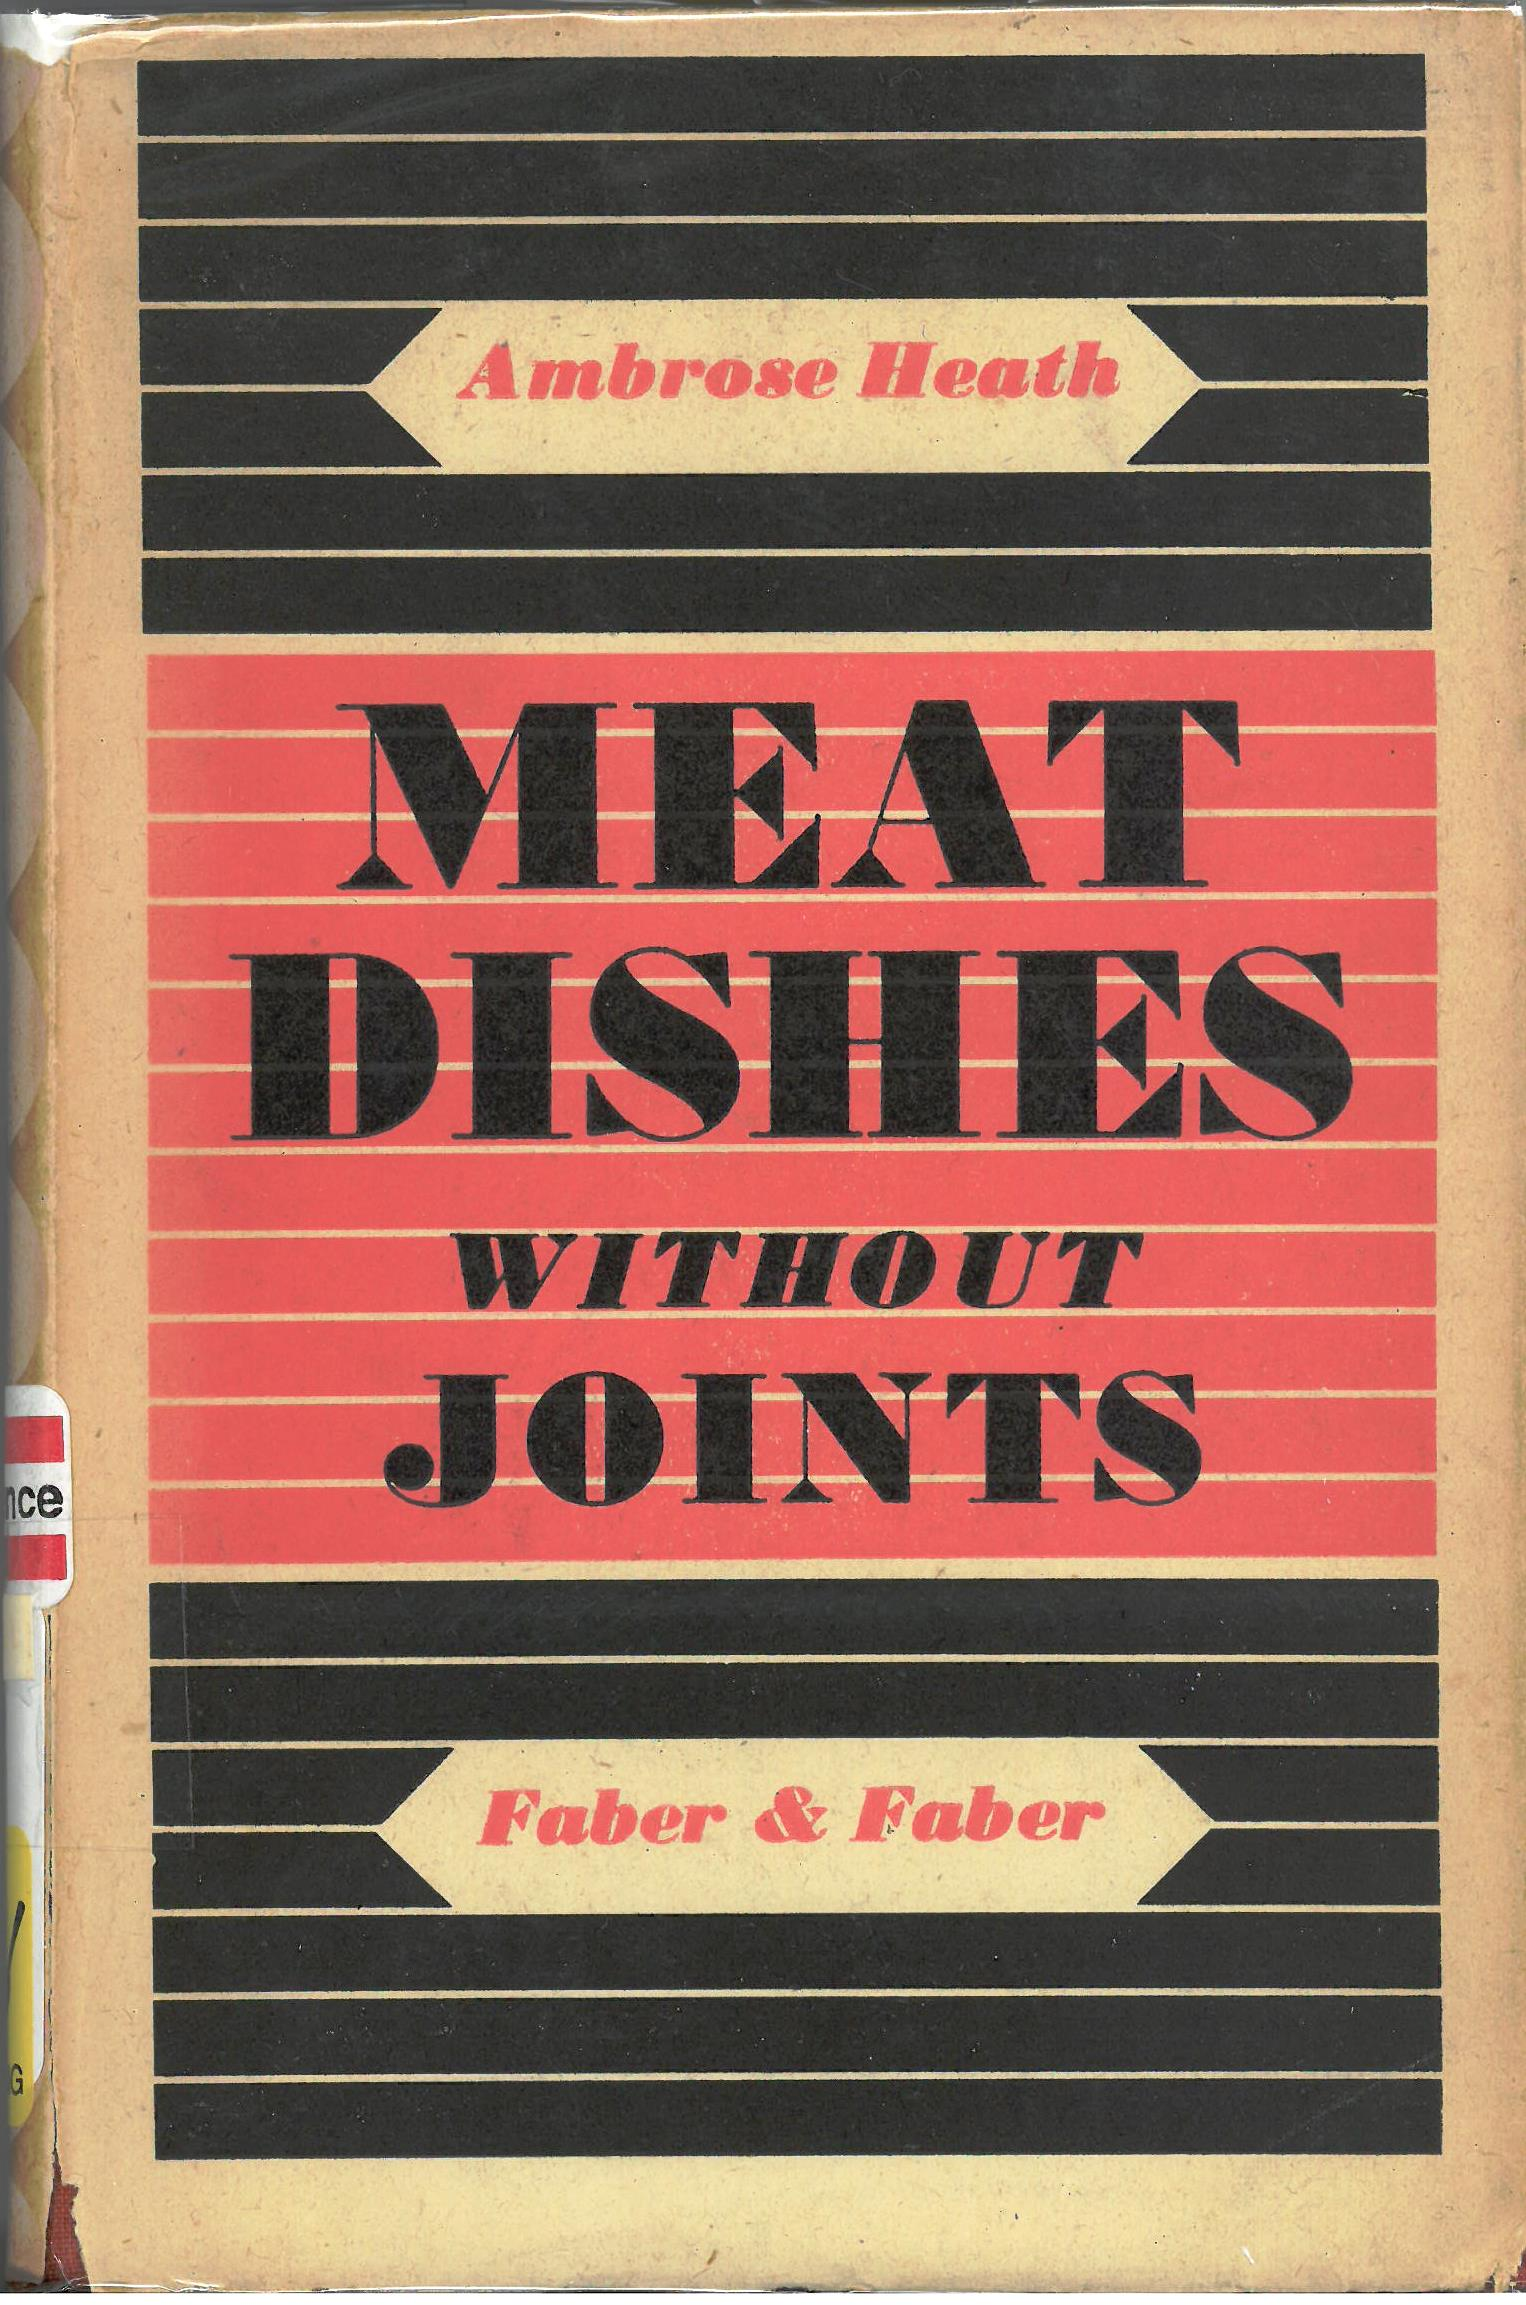 Meet Dishes without Joints